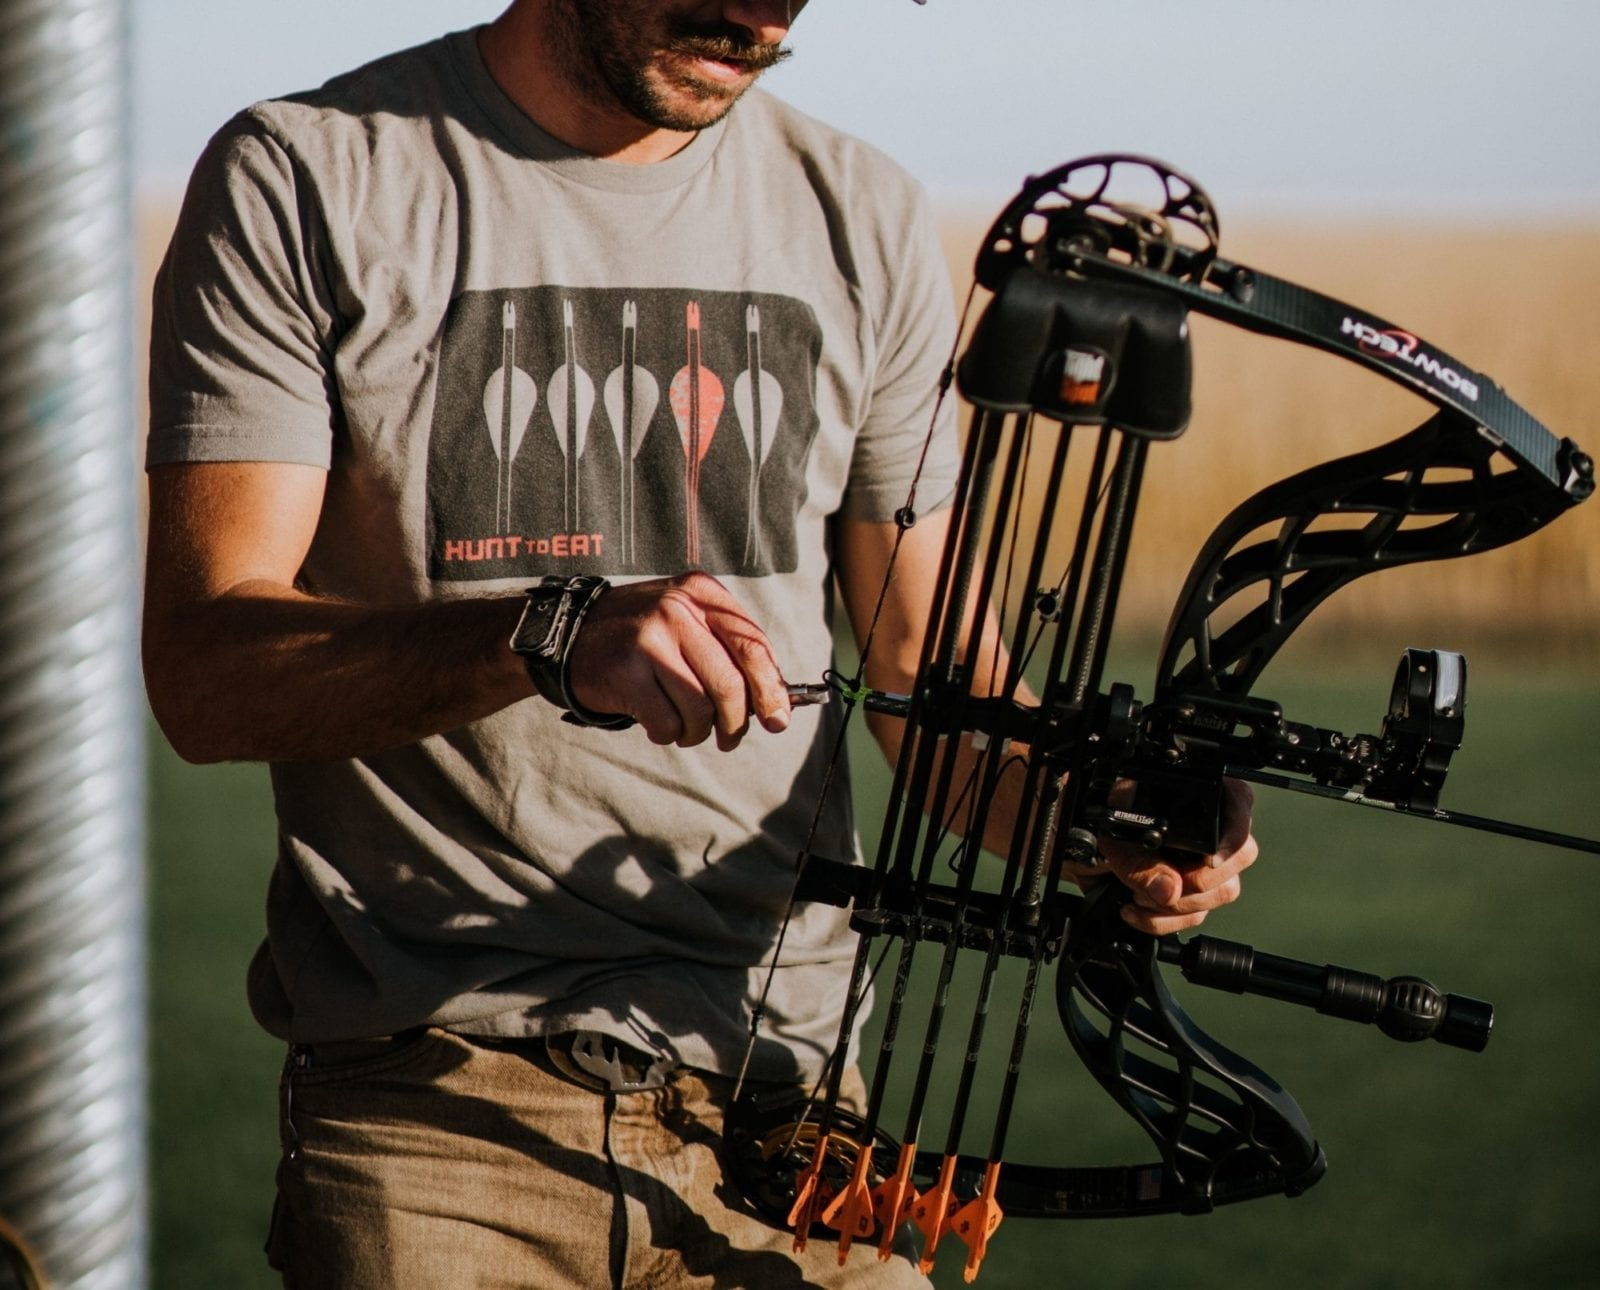 A bowhunter nocks an arrow while at target practice.